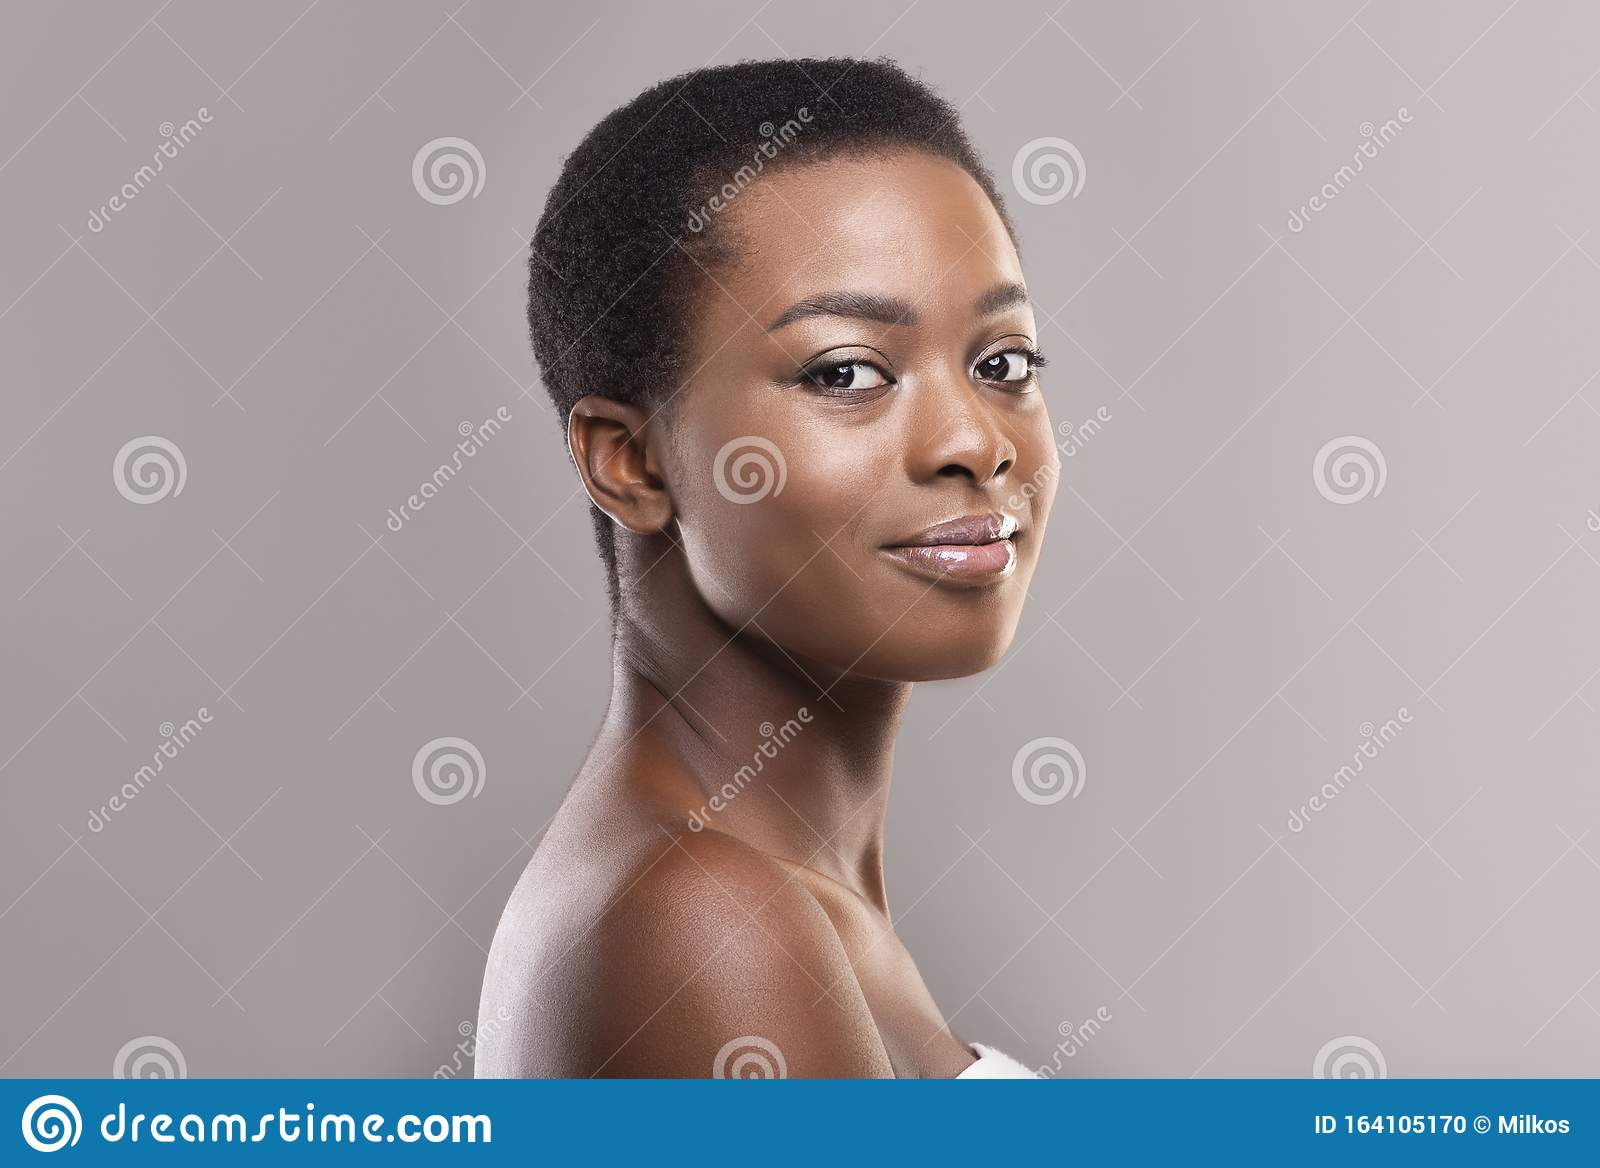 Beautiful Afro Woman With Natural Makeup And Short Hair Stock Photo Image Of Clean Millennial 164105170